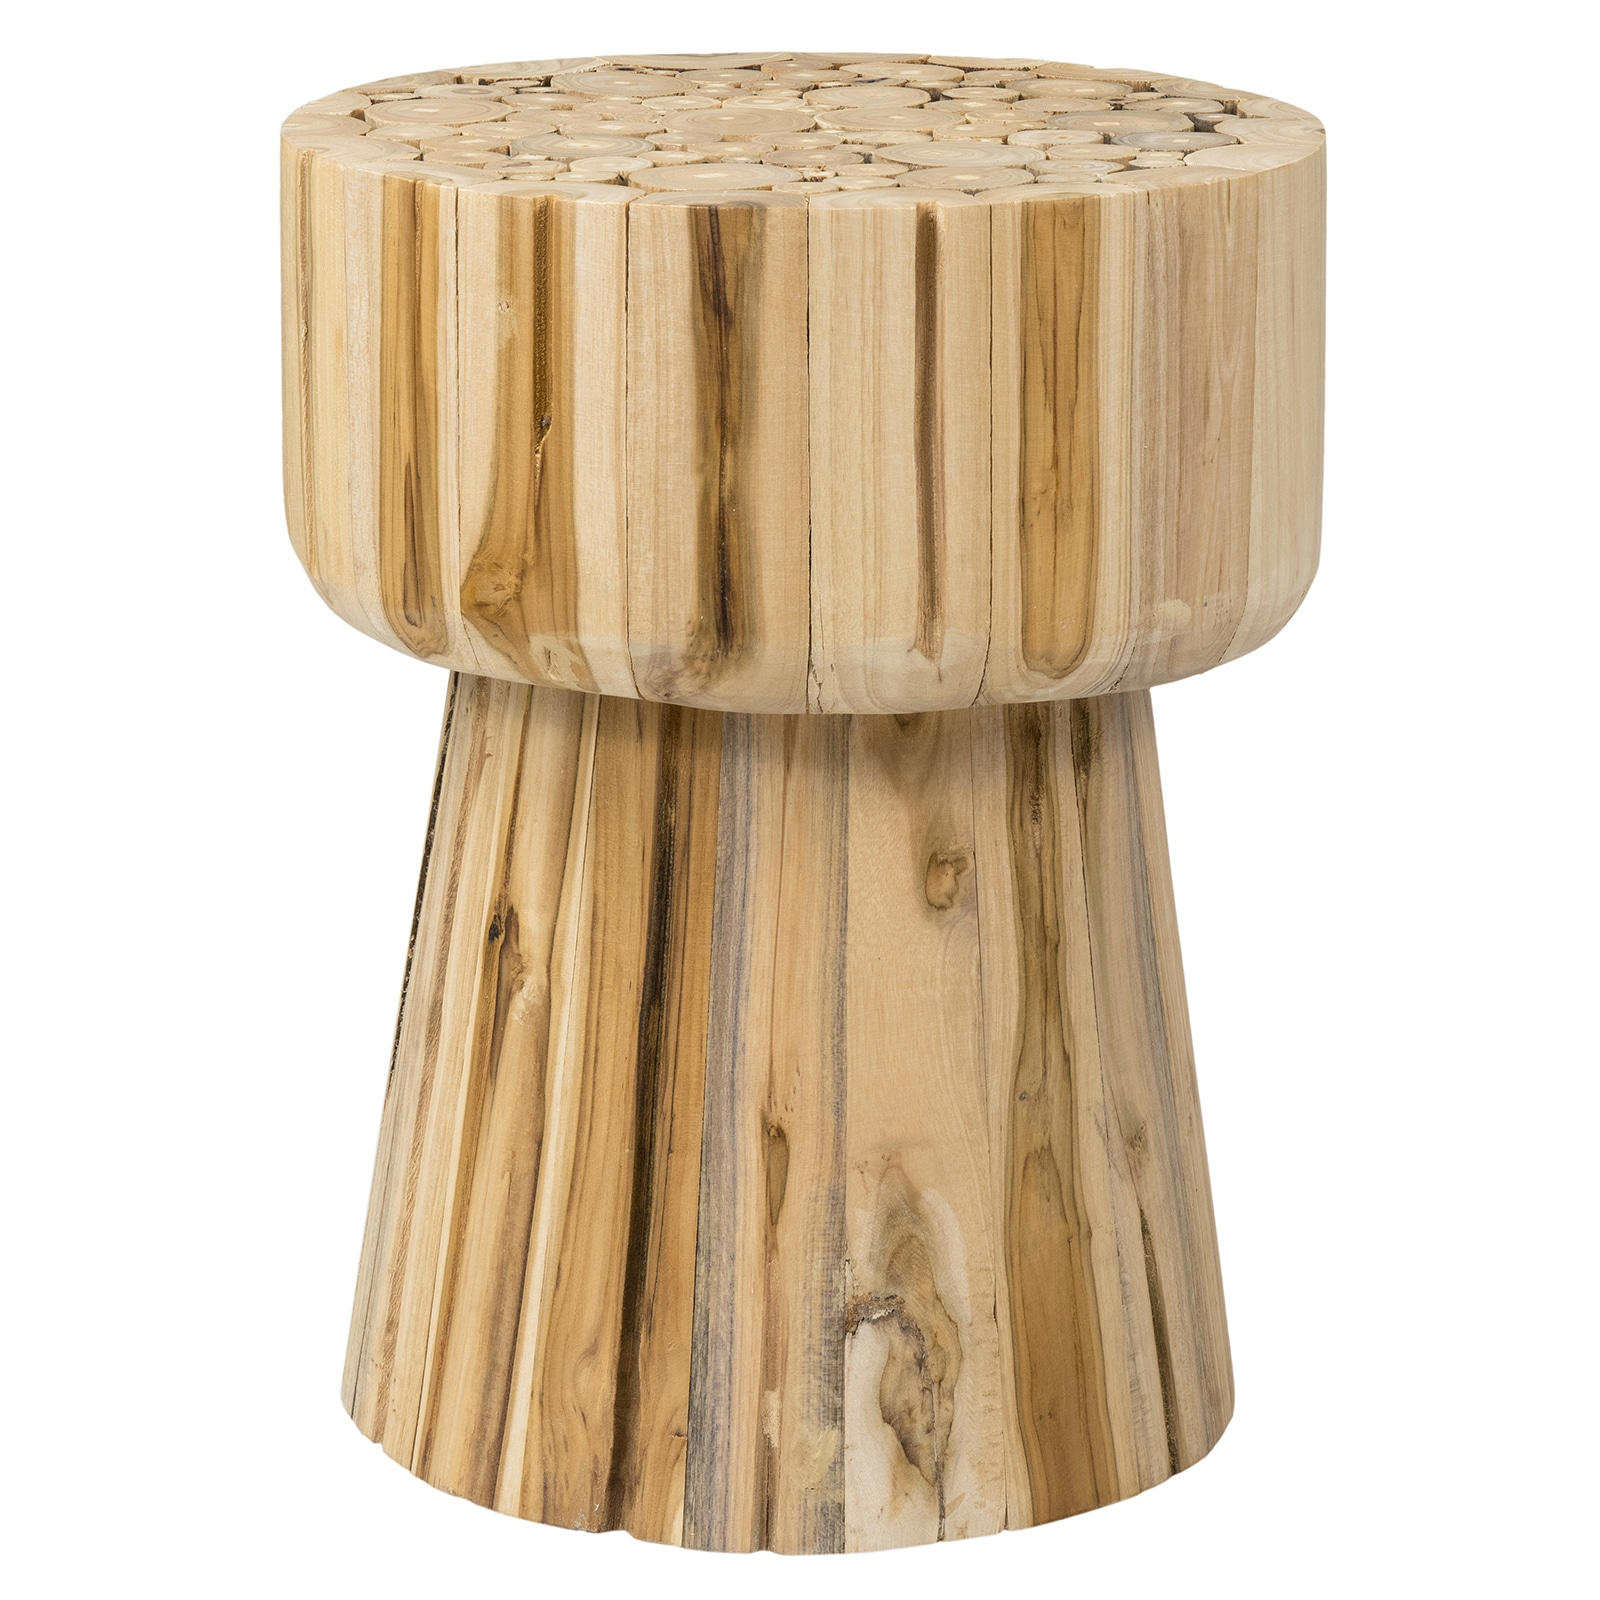 east main lawton brown round teak log accent table mains wood free shipping today small corner side target white lamp entryway folding outdoor pillows chinese bedside lamps